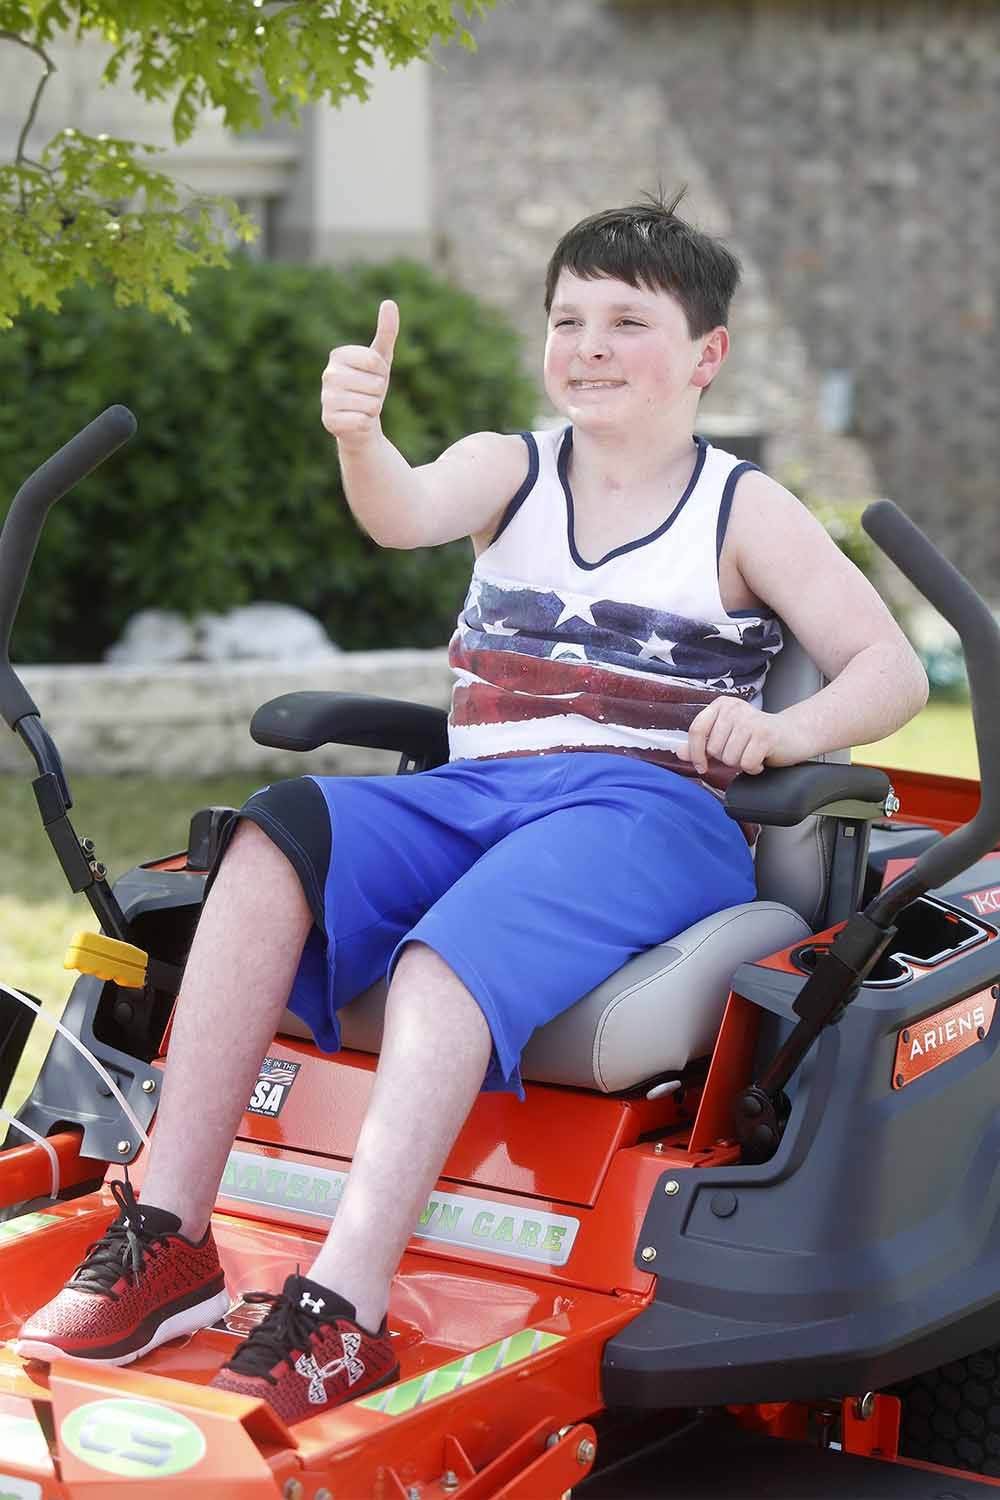 Carter Rides On Wish With Generous Gift Community Alert